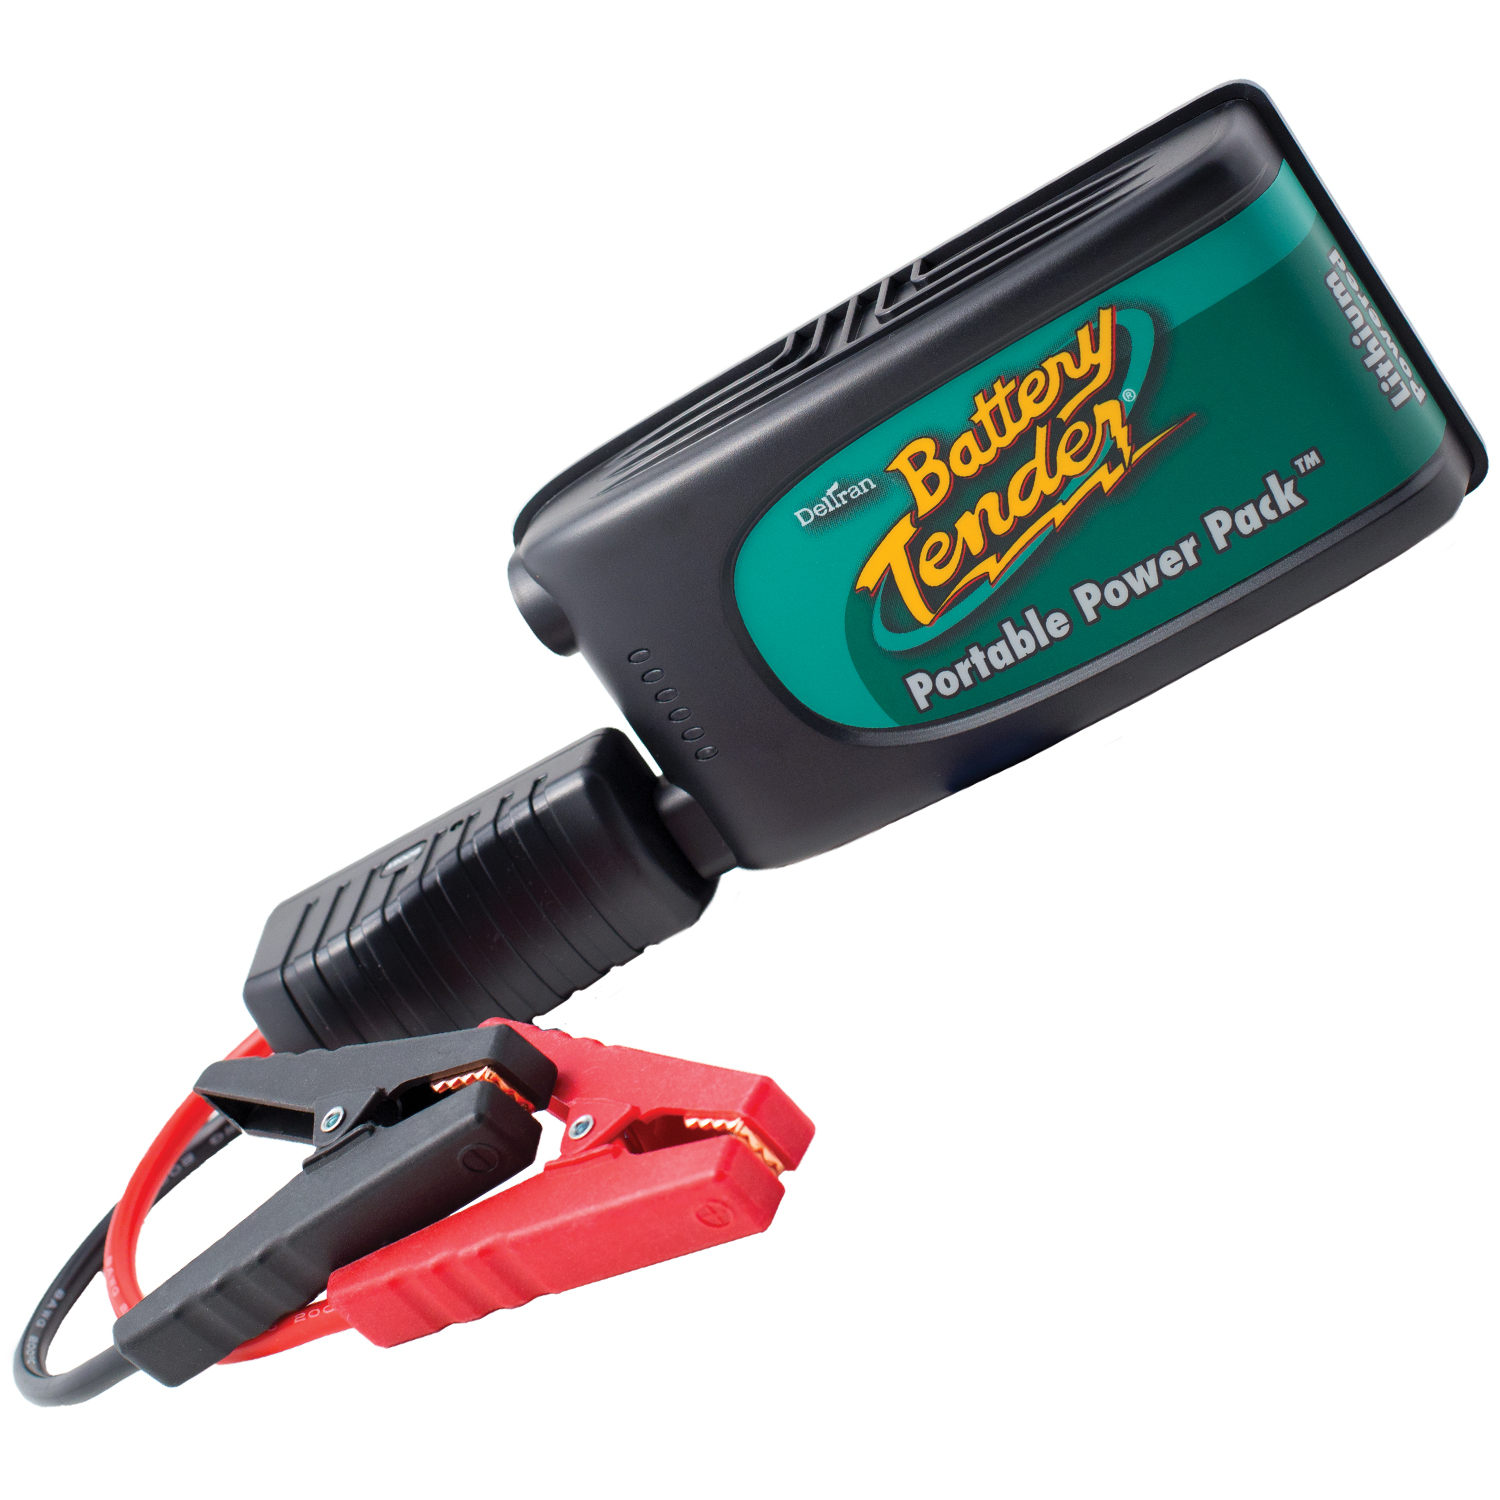 Car Battery Tender Charger additionally Best Marine Battery Charger Reviews Best Car Battery further 182399937539 further What Size Solar Panel To Trickle Charge 12v Battery furthermore 1 60 Yf 21. on trickle charger walmart